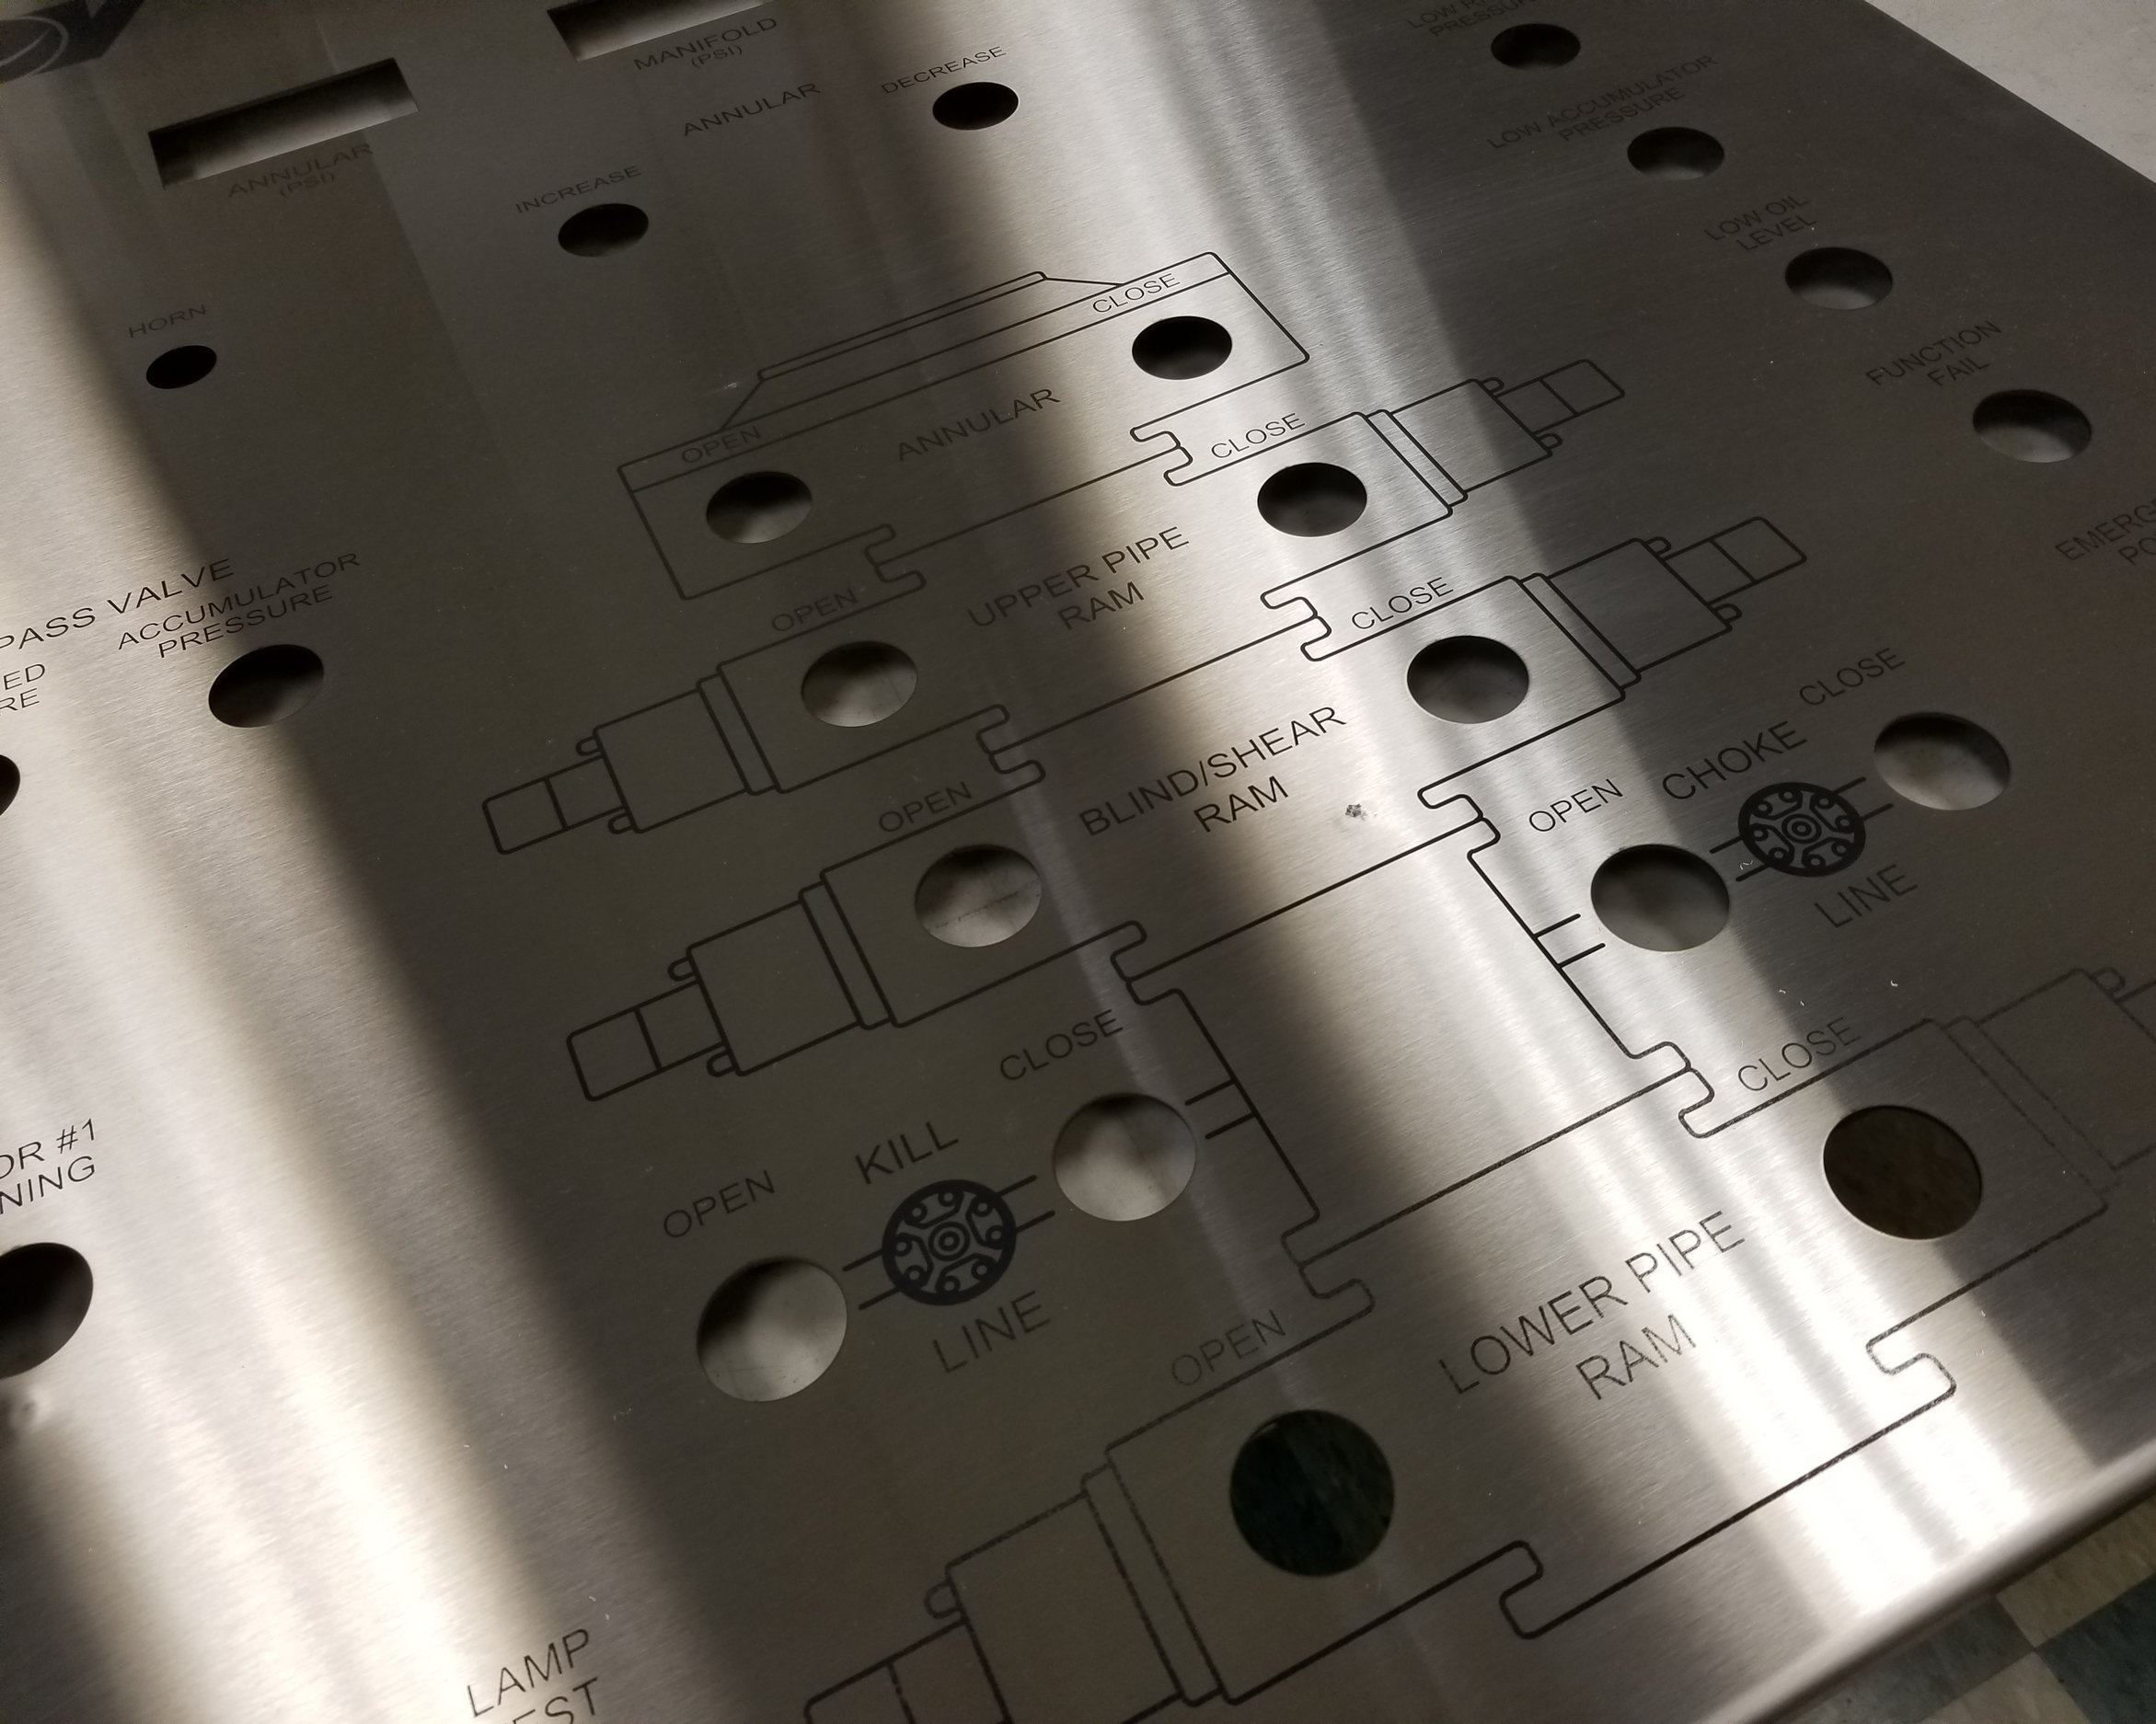 Enclosure Panels - Custom panels or covers to fit enclosures of all sizes. Laser engraved, marked, etched, or direct printed according to your technical drawings. Provide your own or have us manufacture one for you.